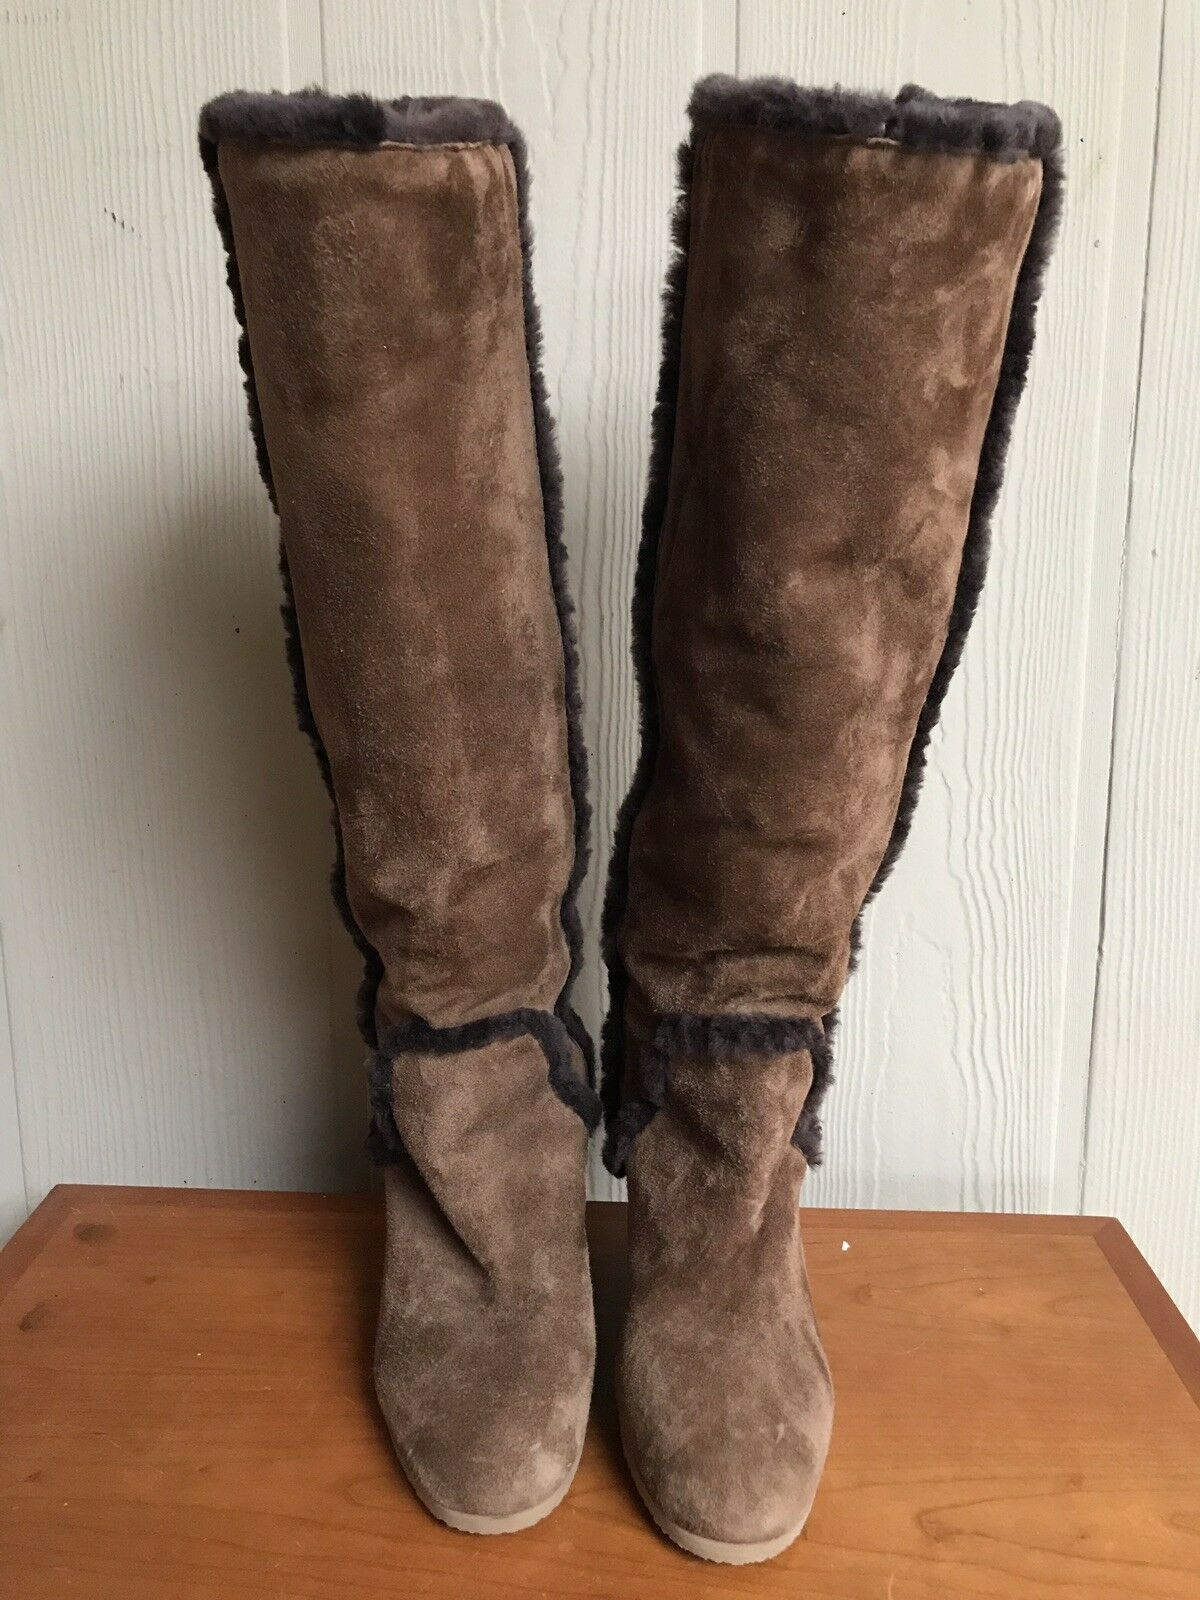 J.Crew Boots, Women's Size 8.5 Brown Suede, Fur Inside